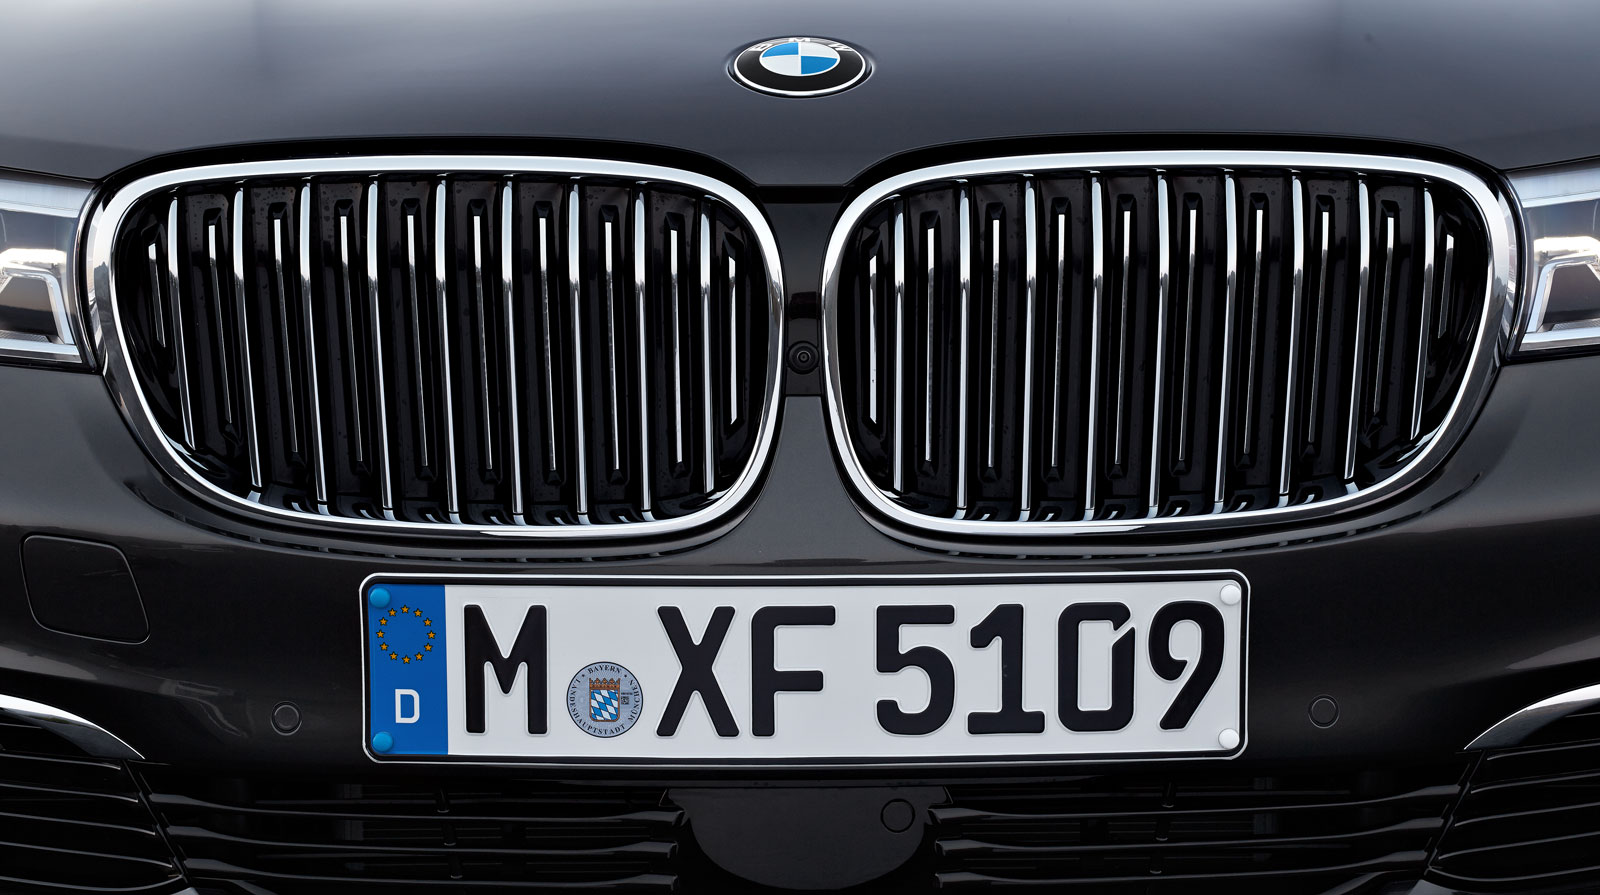 Bmw 7 Series Kidney Grille With Active Shutters Car Body Design